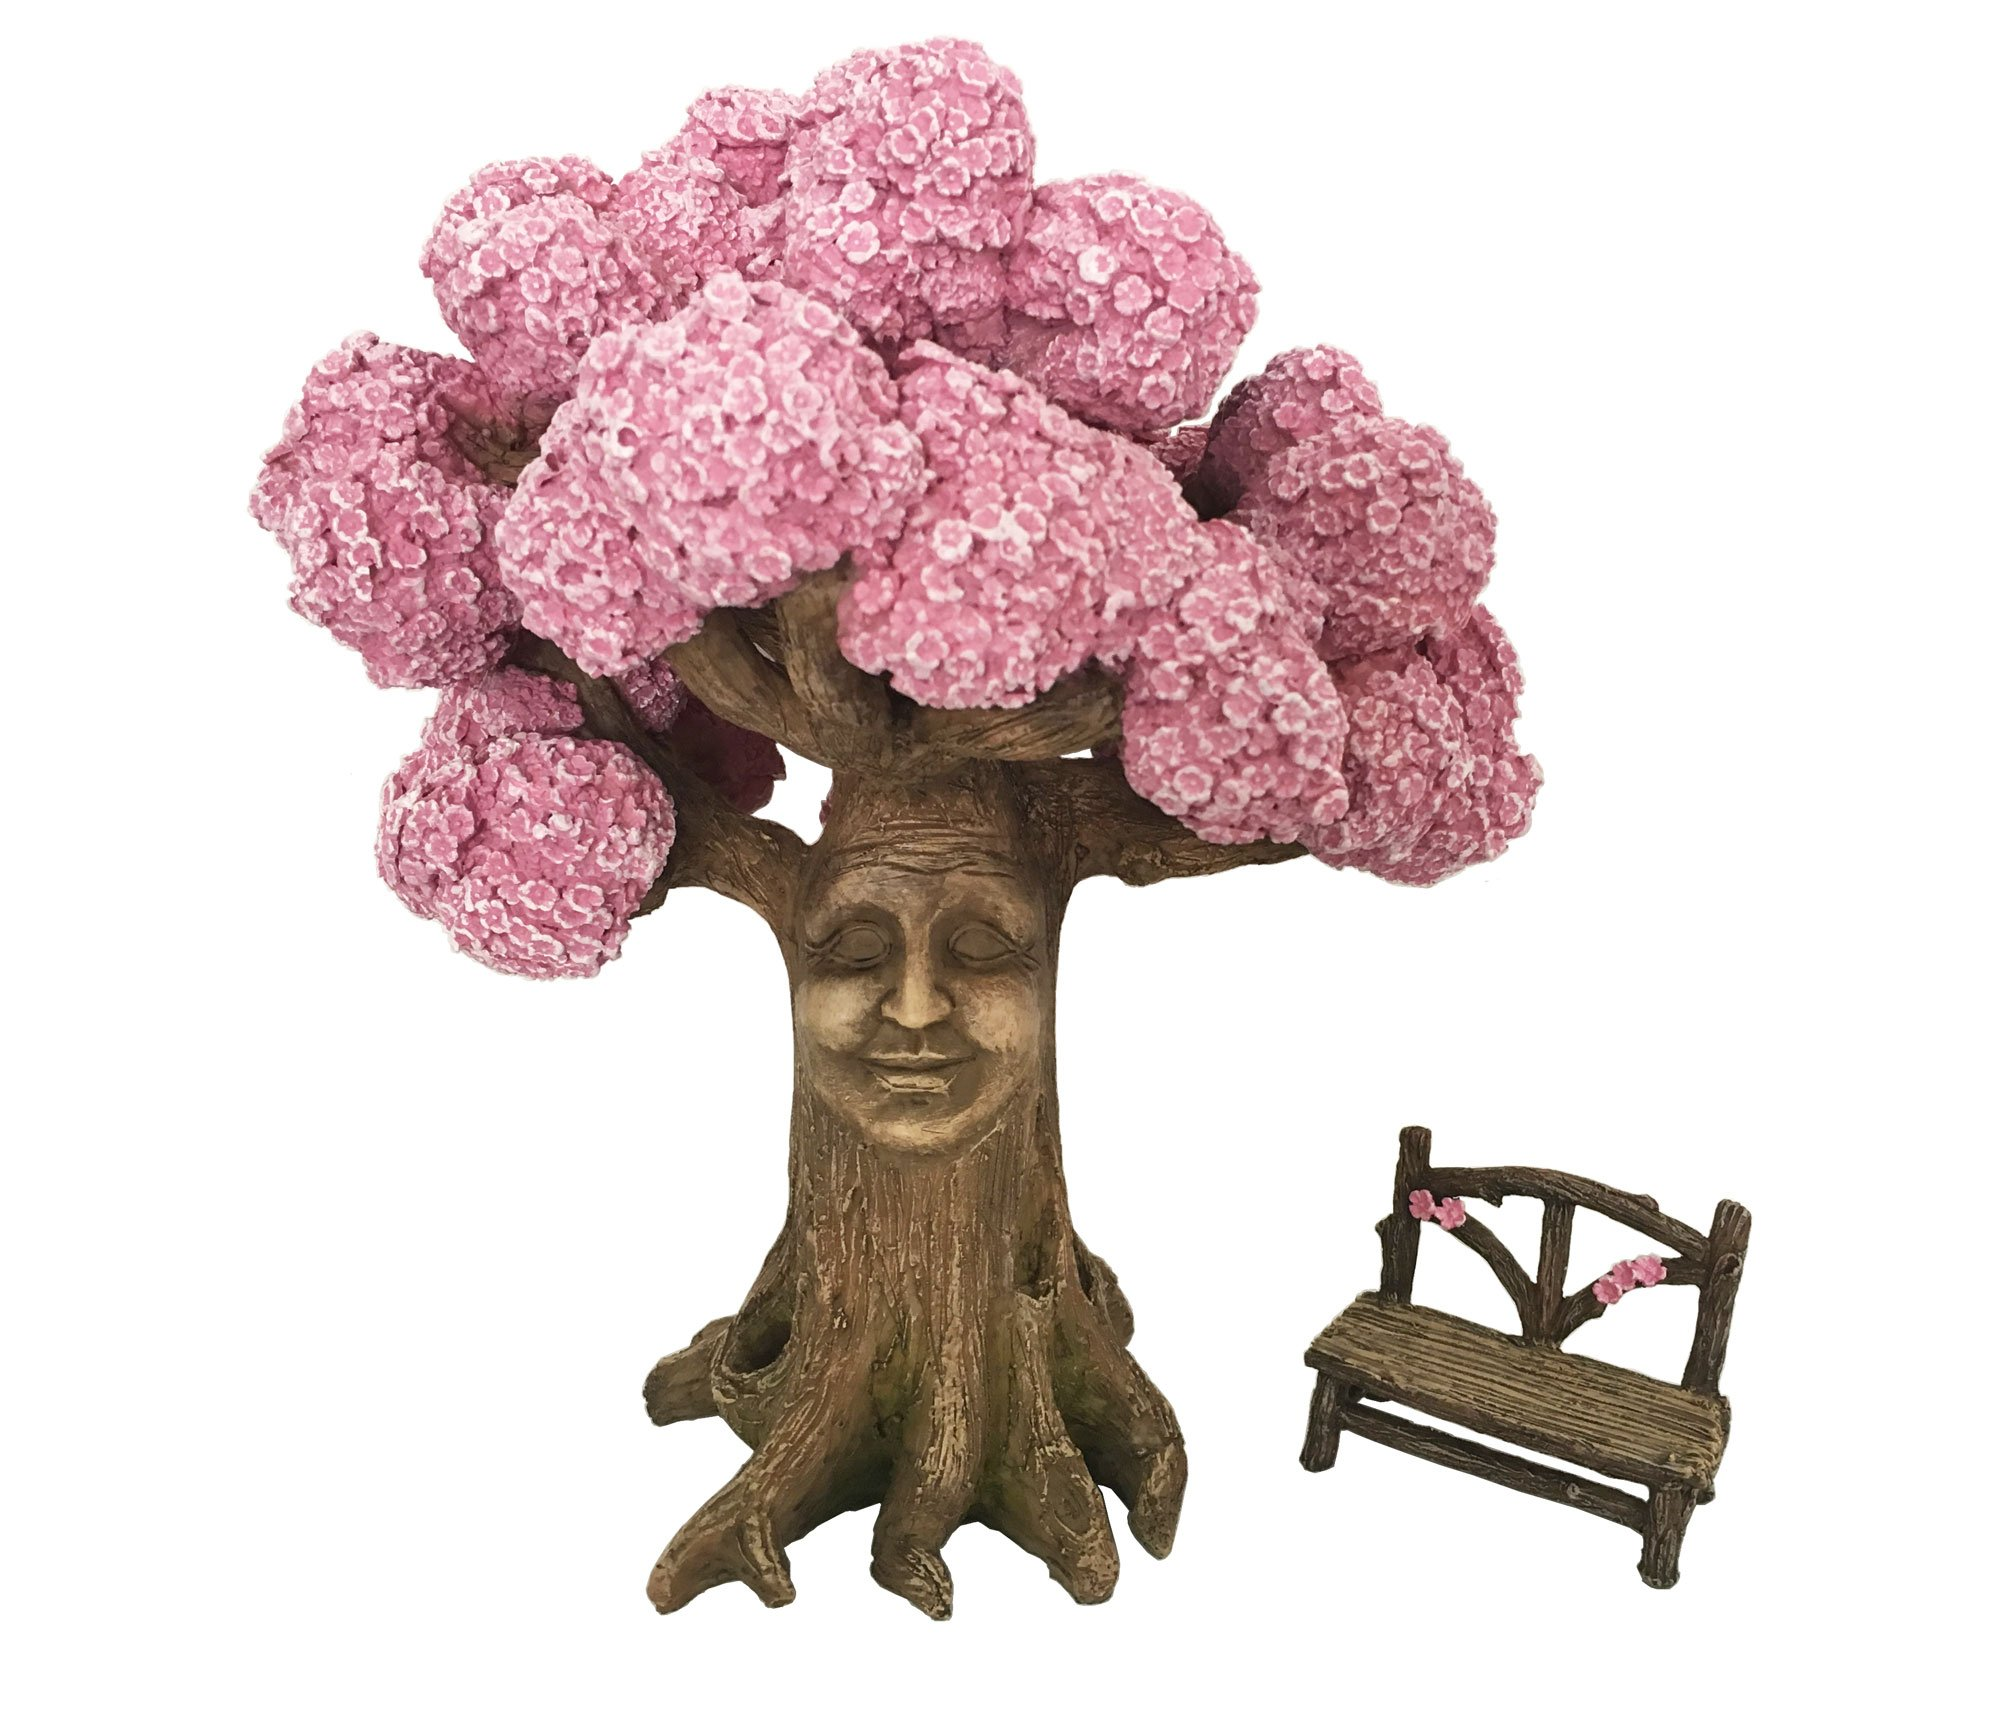 GlitZGlam Ethan's Magical Tree with a Matching Fairy Bench for The Enchanted Fairy Garden (9 Inch Tall) - A Fairy Garden Accessory